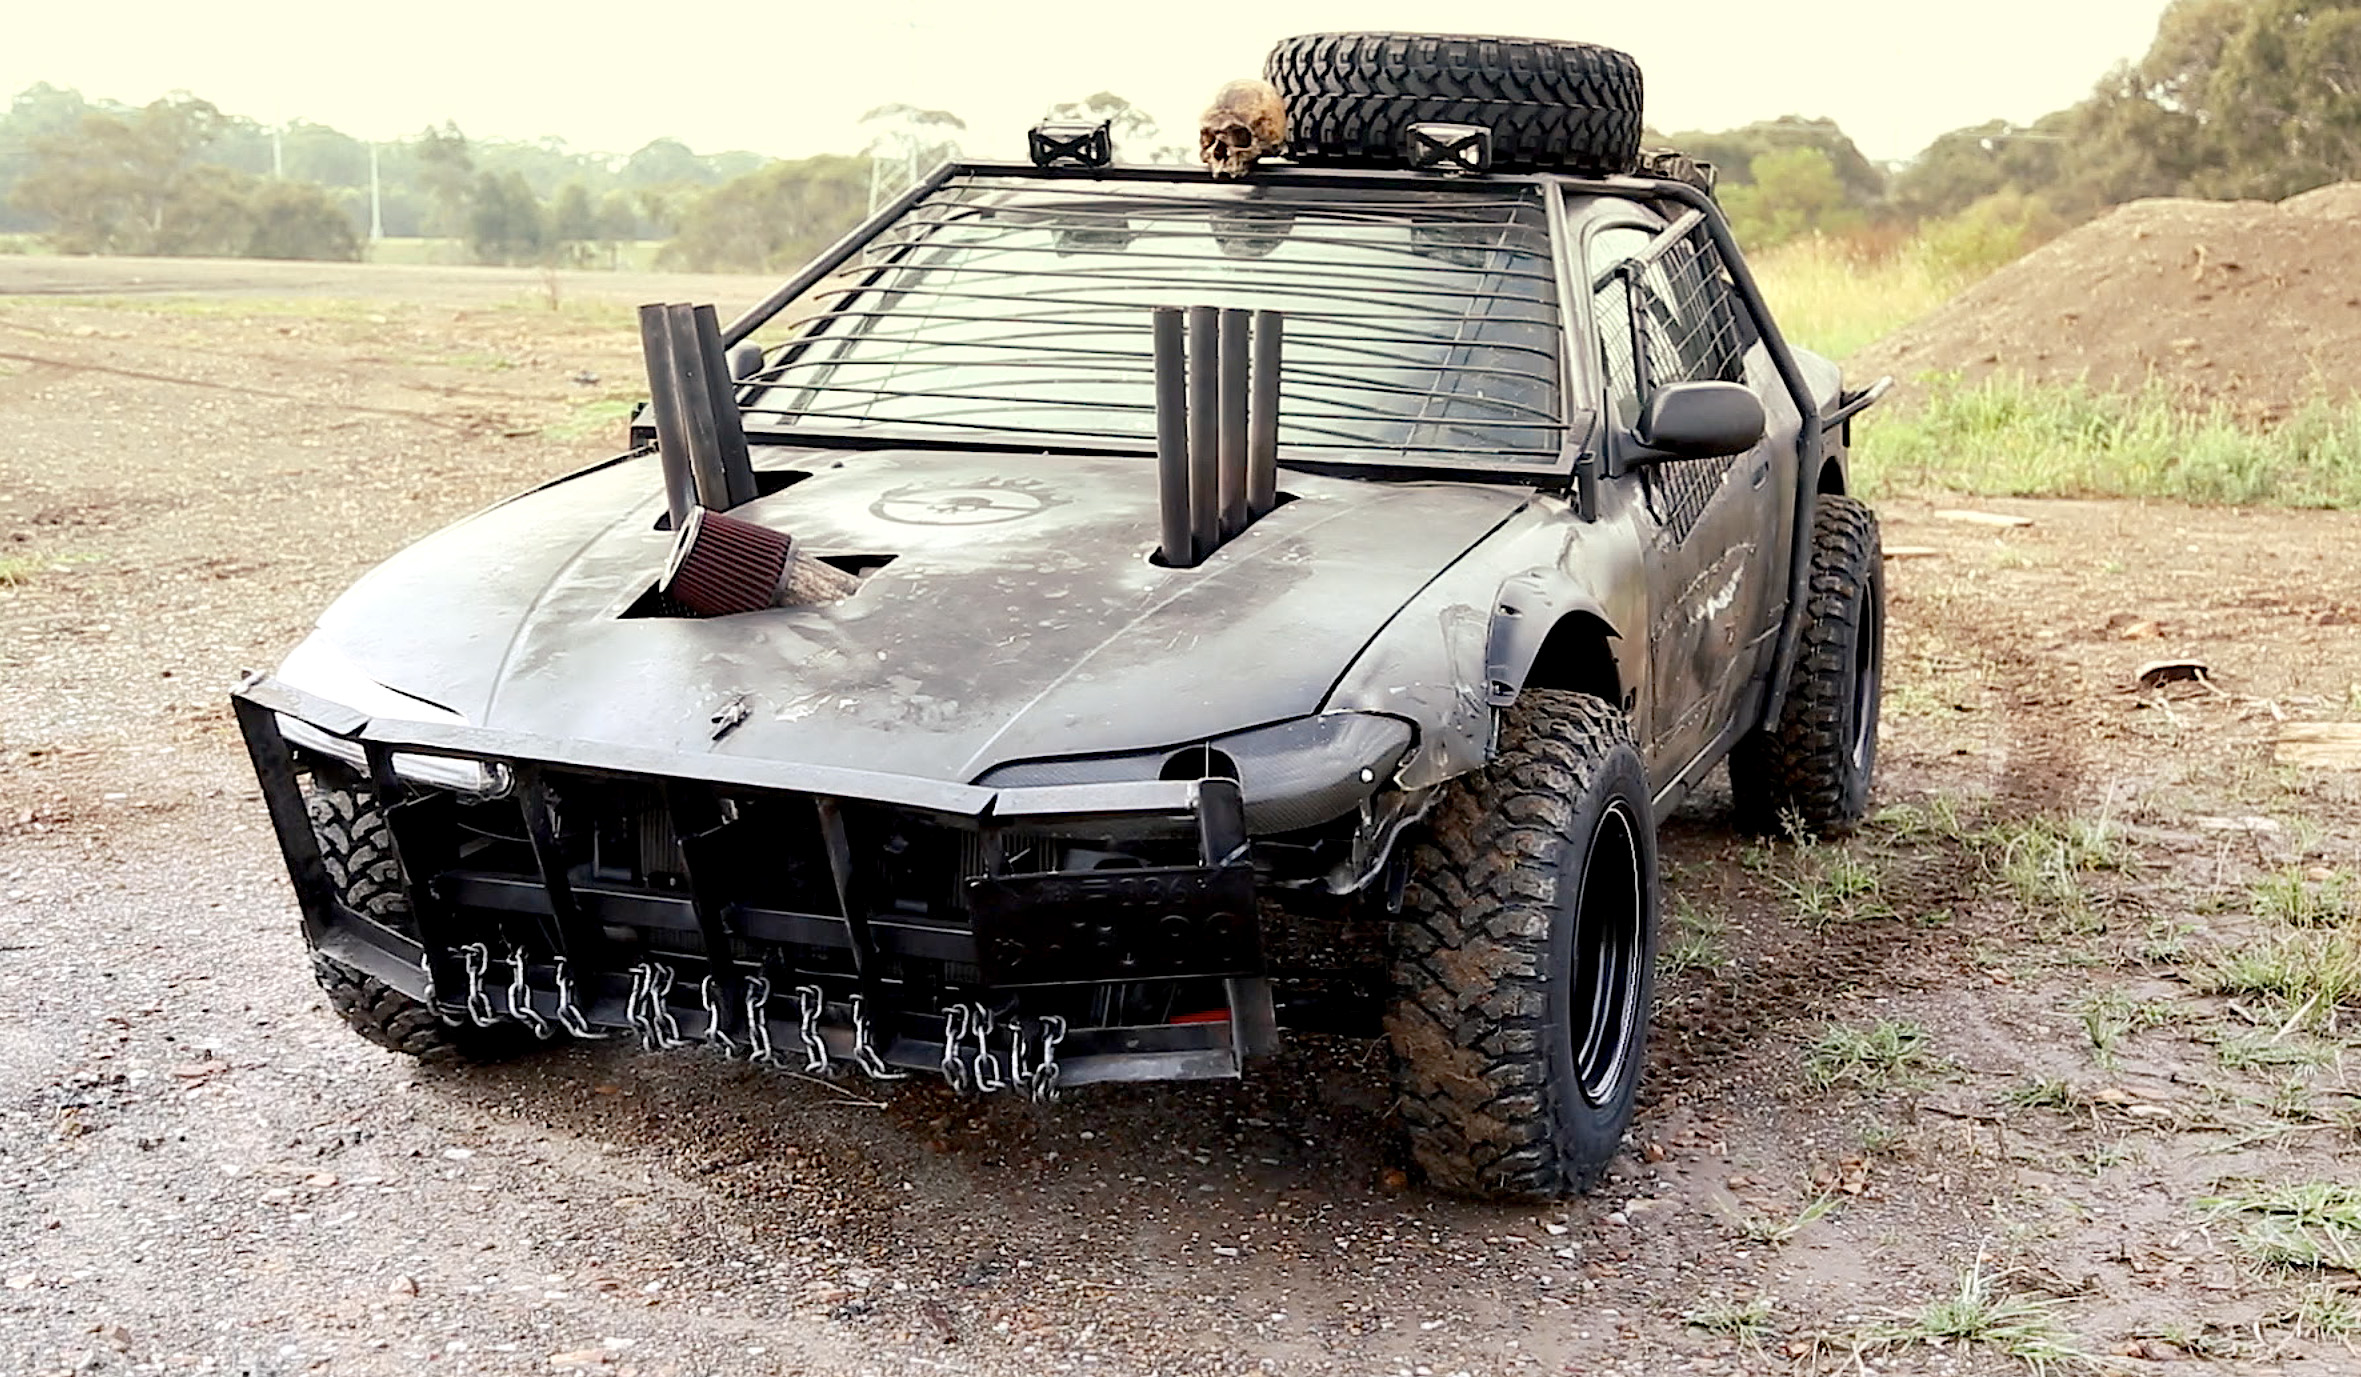 mighty car mods web series creates mad max inspired car b t. Black Bedroom Furniture Sets. Home Design Ideas